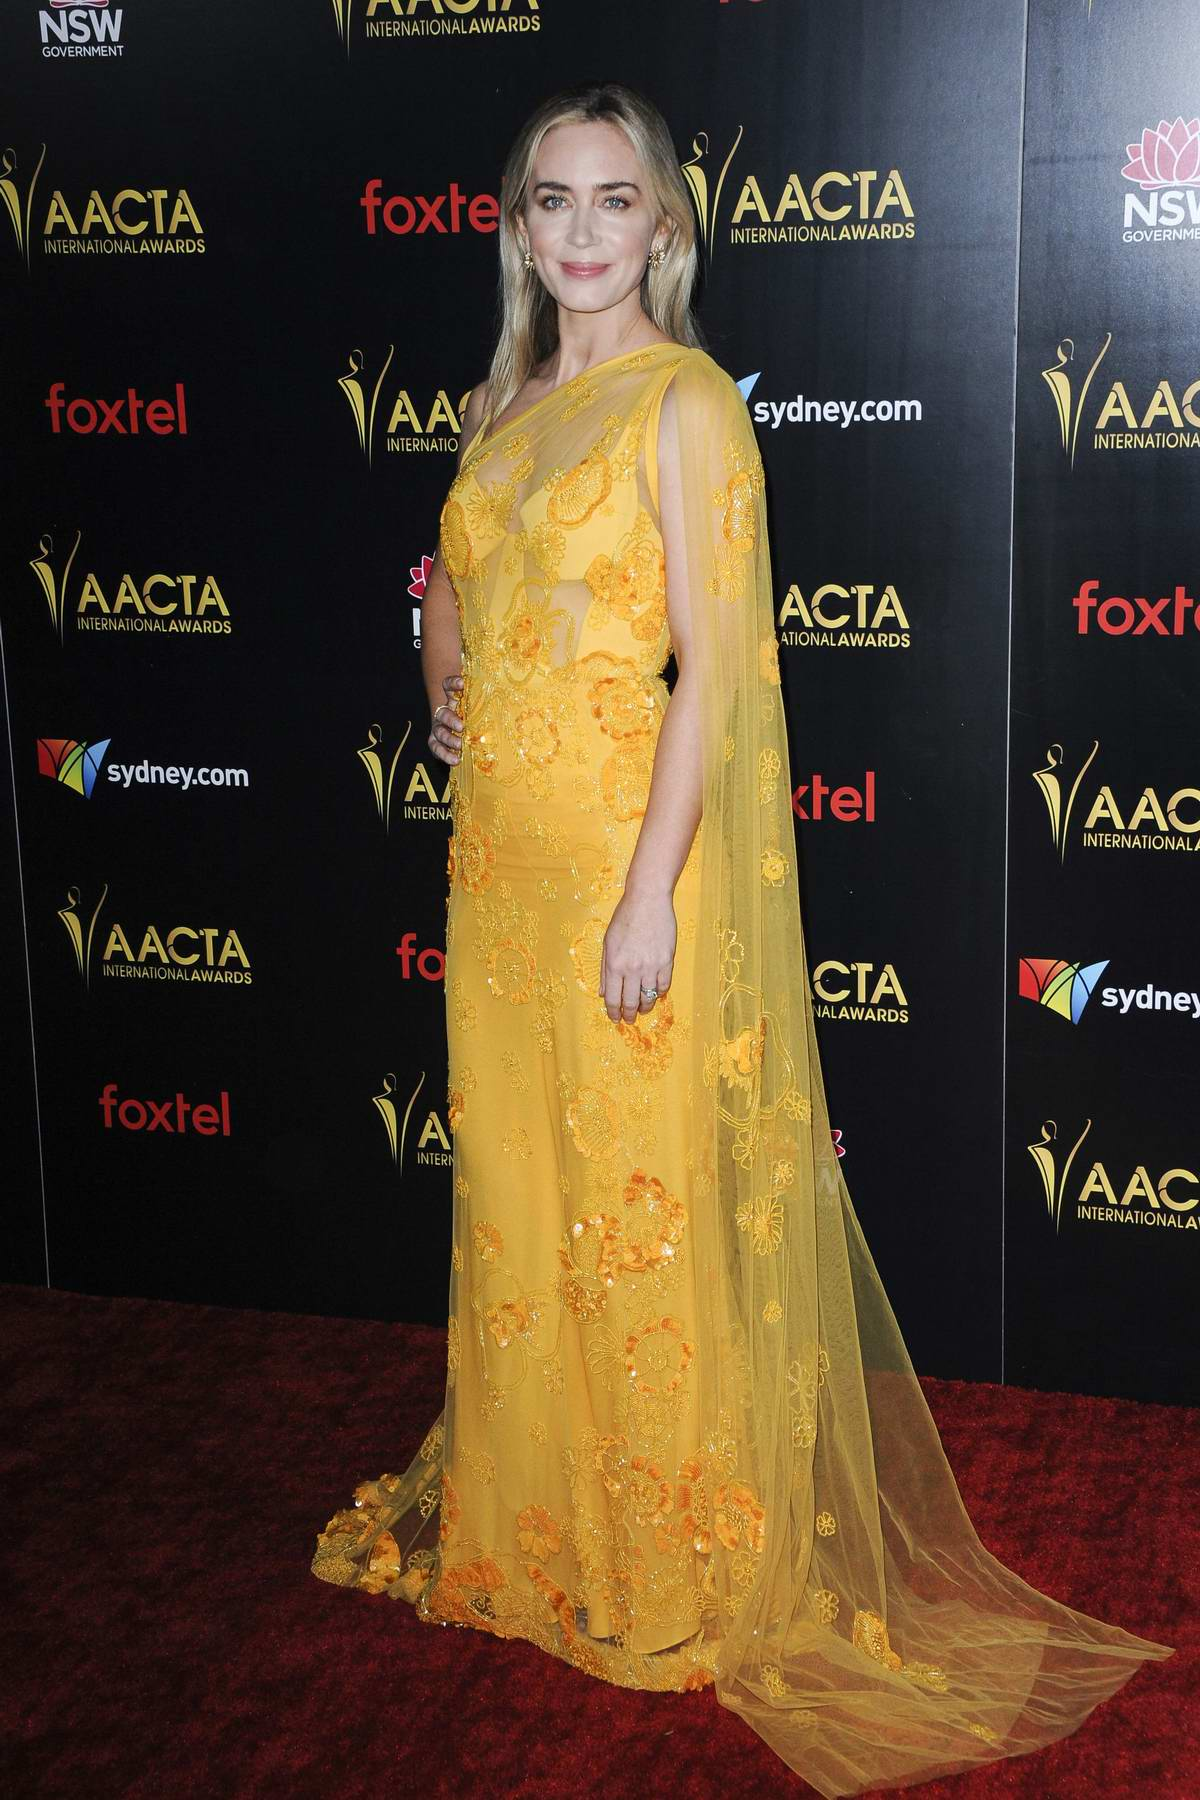 Emily Blunt attends 8th AACTA International Awards in Los Angeles